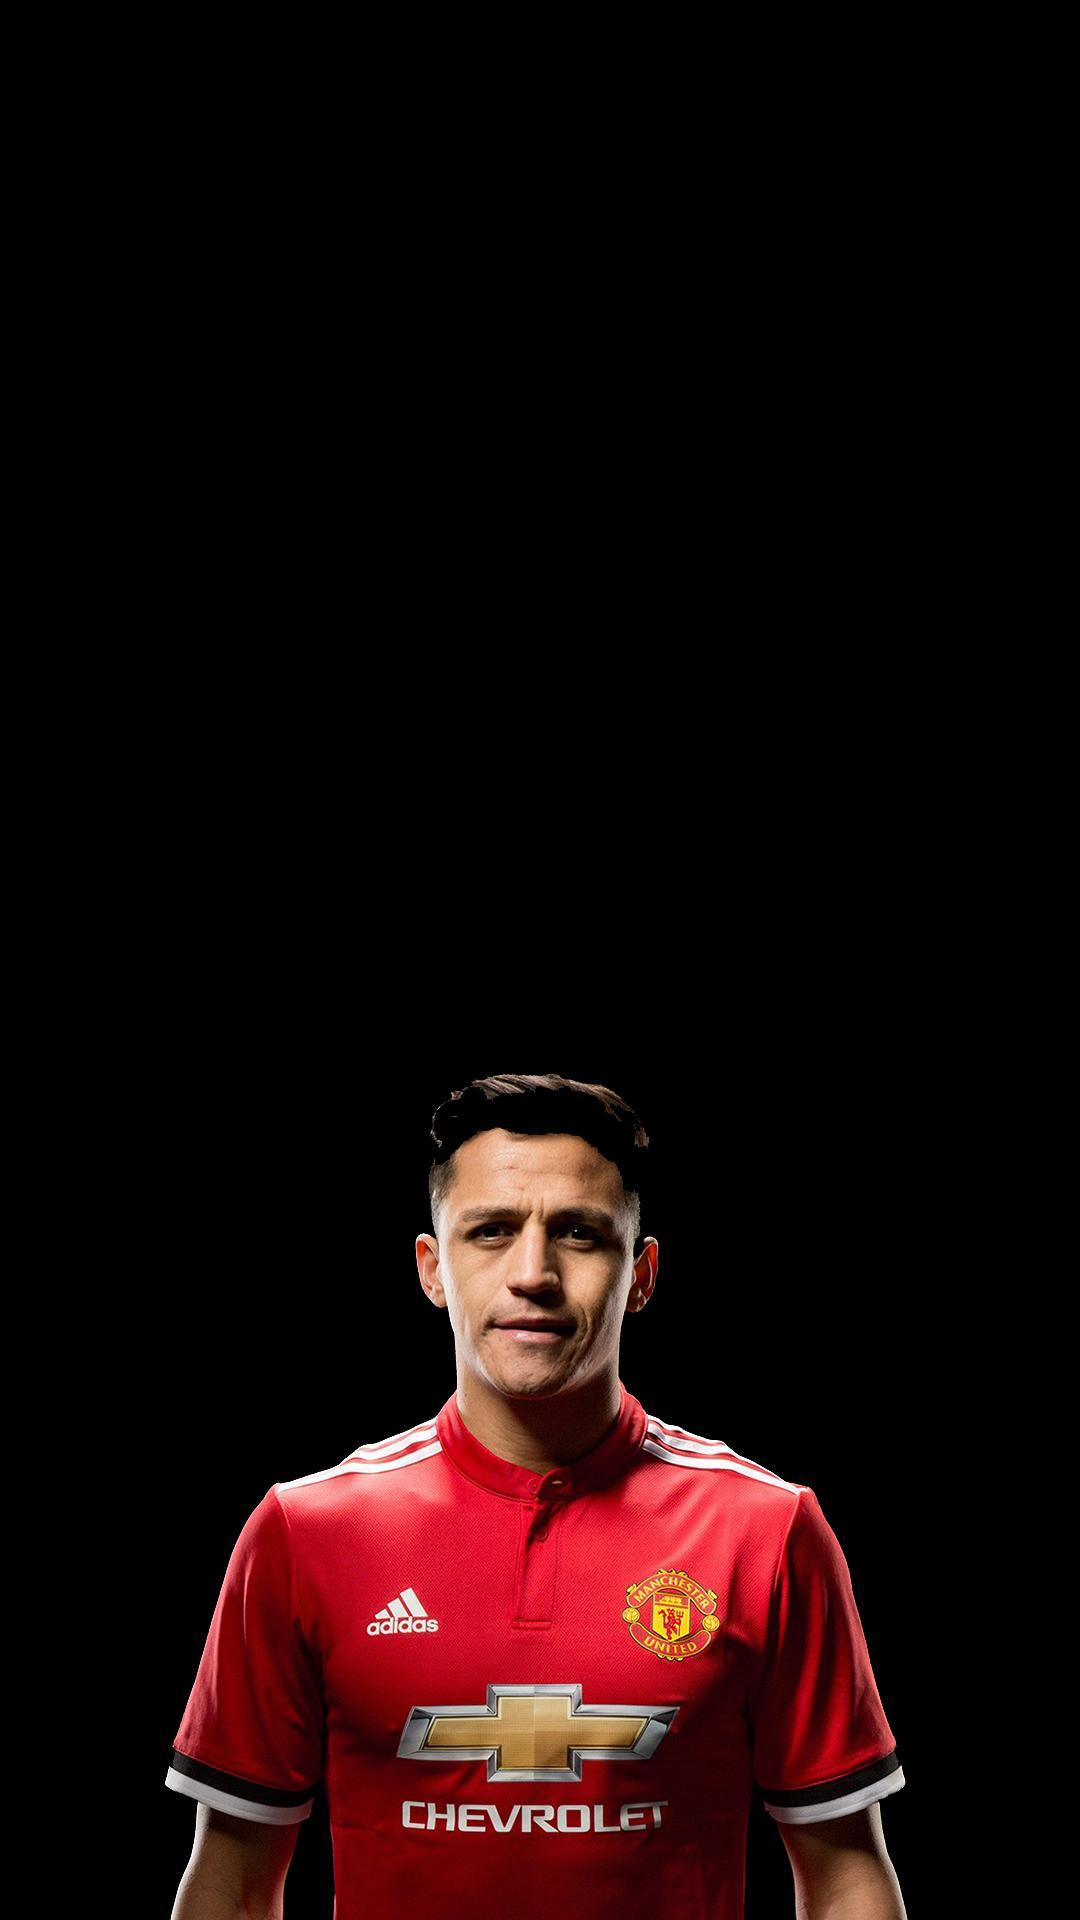 Alexis Sánchez Manchester United Wallpapers Wallpaper Cave